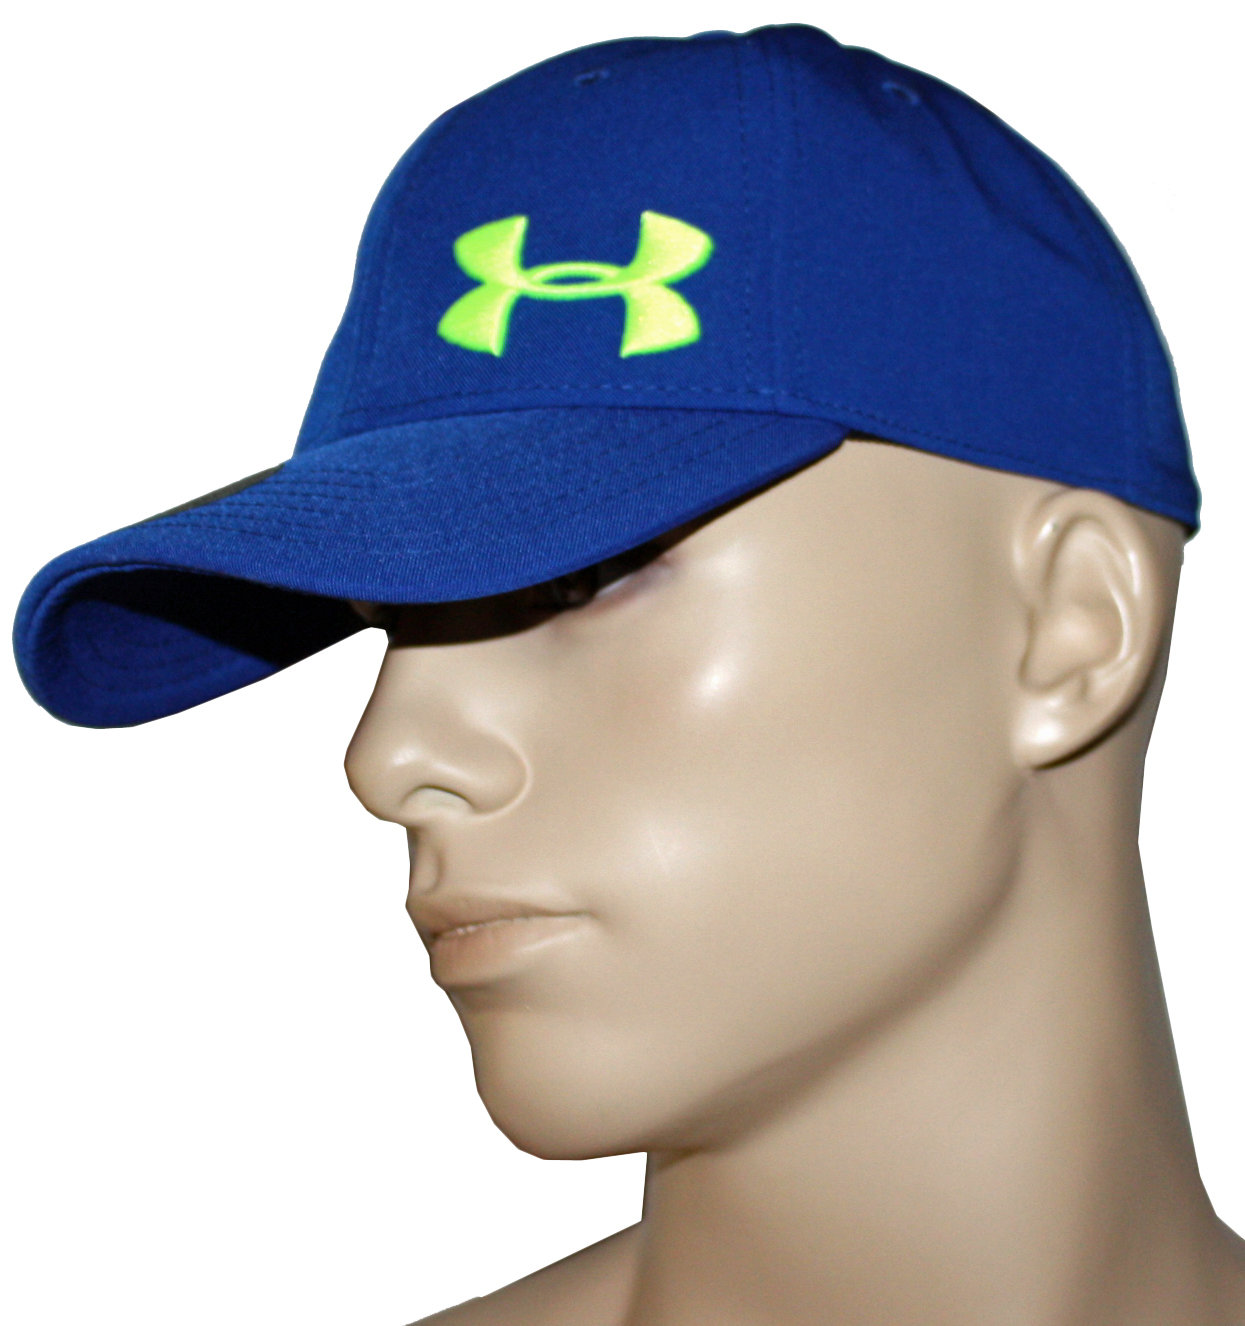 Under Armour Men's Royal Blue/High Vis Yellow UA Adjustable Hat